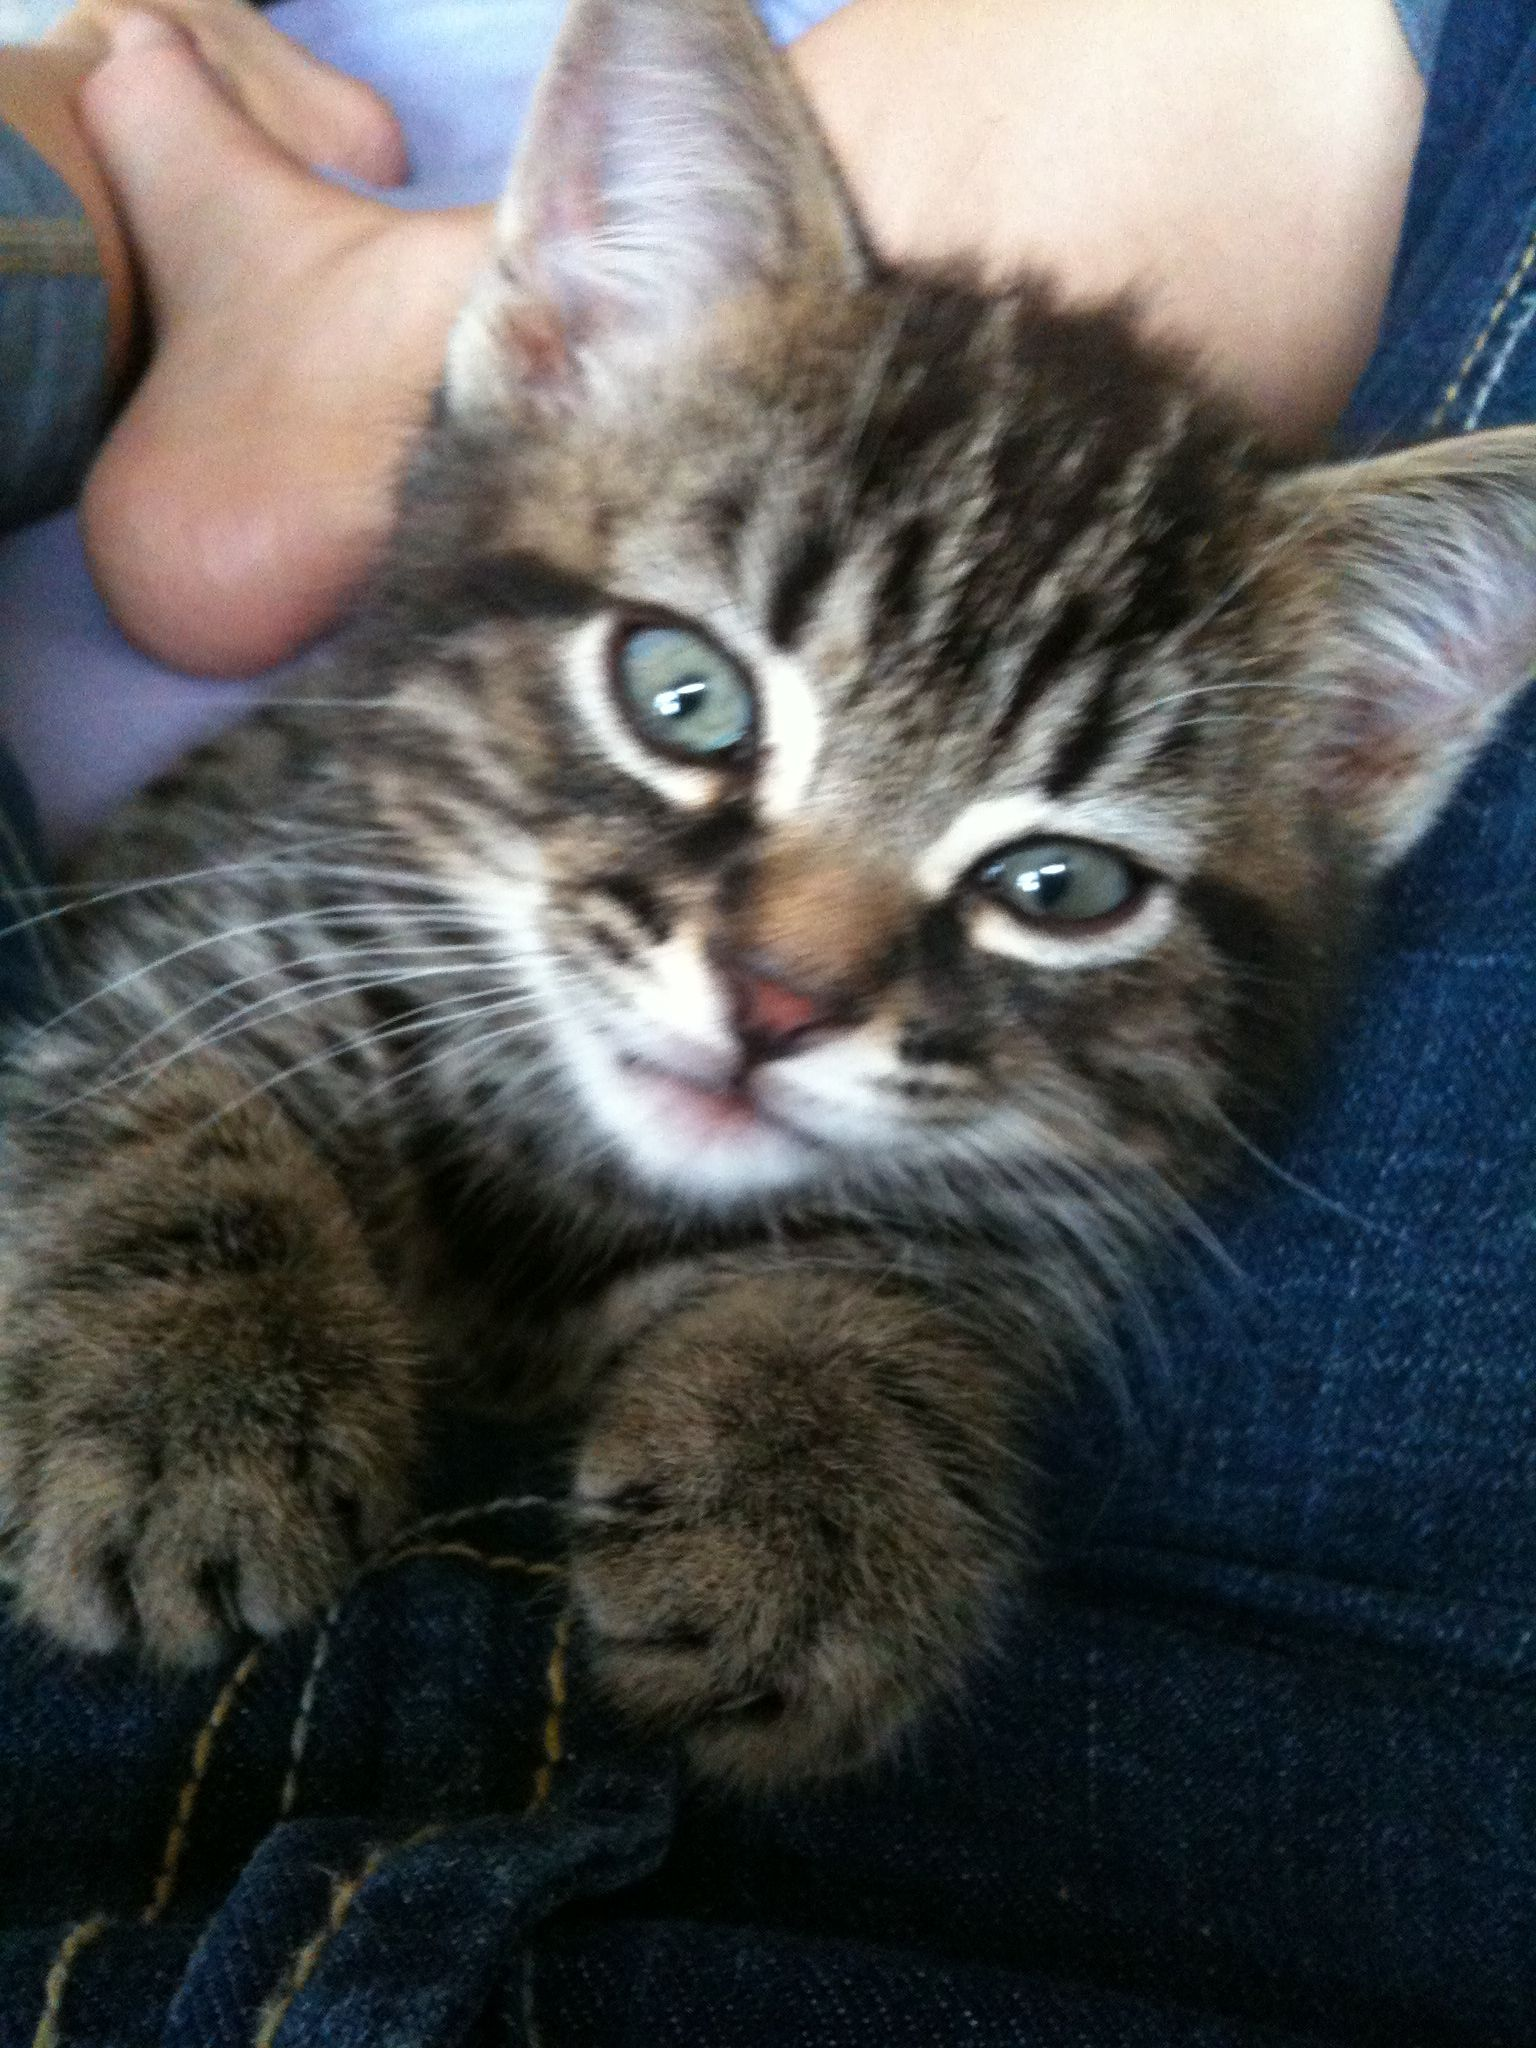 oh my goodness this is the cutest kitty ever